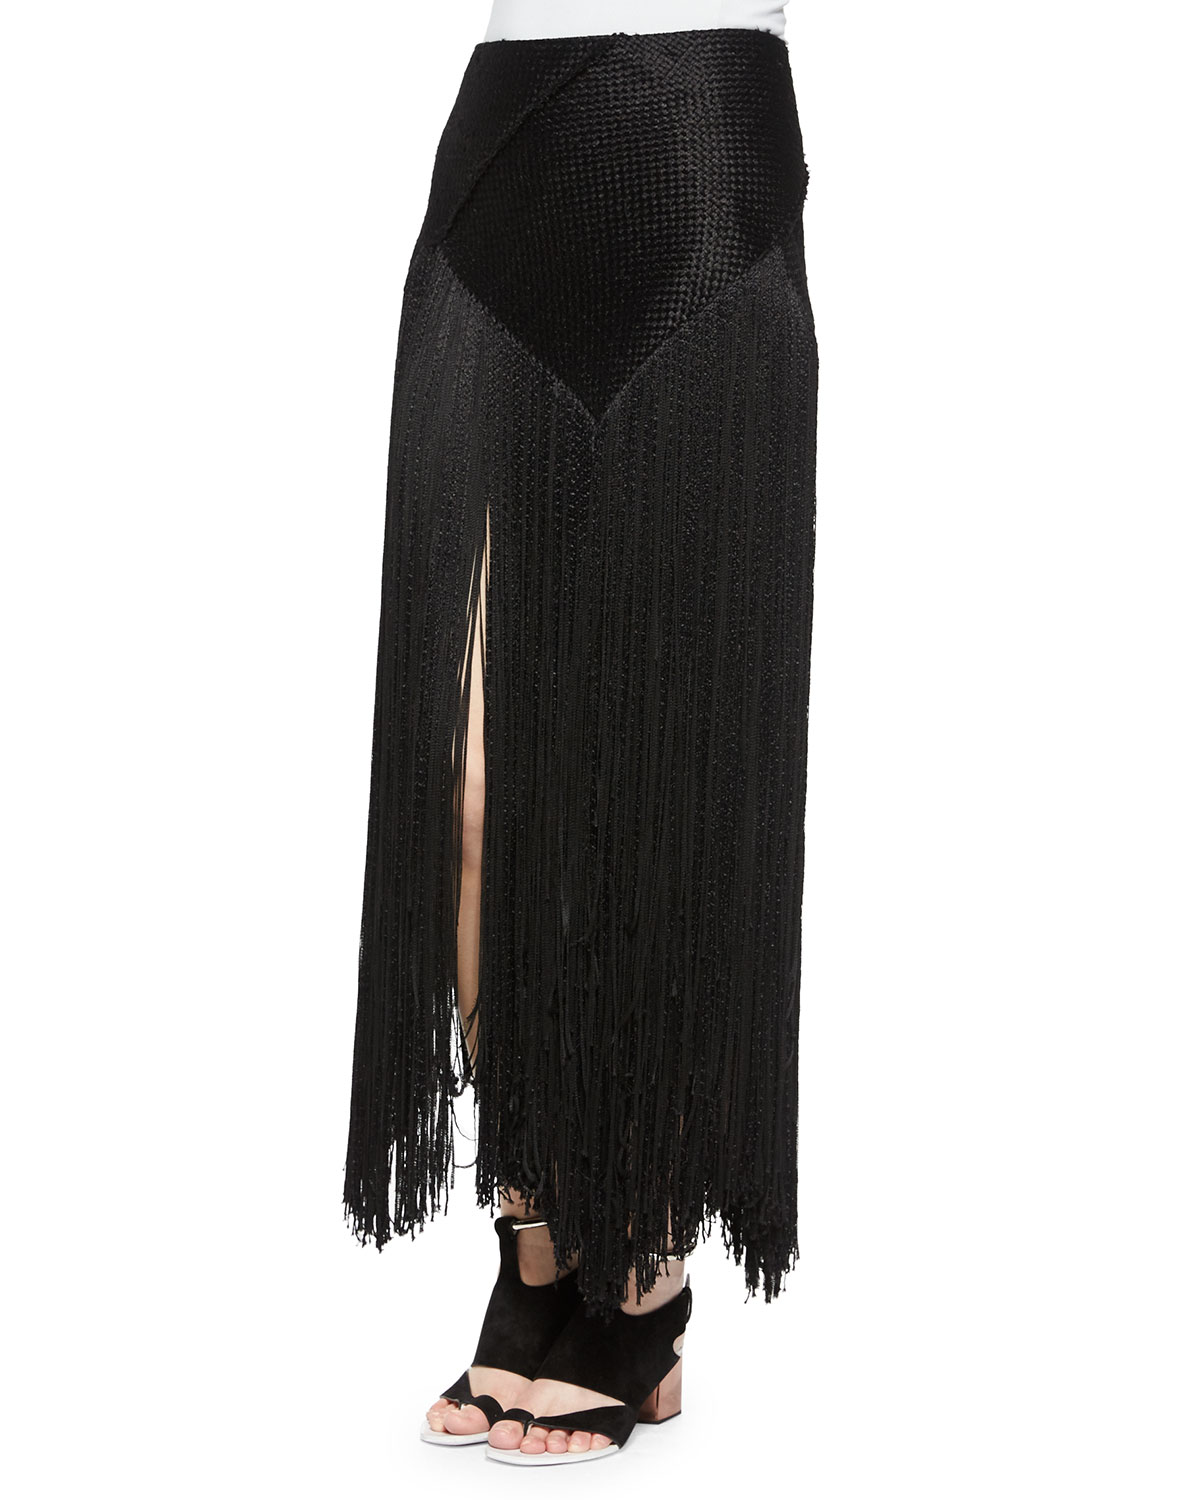 Woven Long Fringe Skirt, Size: 6, Black - Proenza Schouler